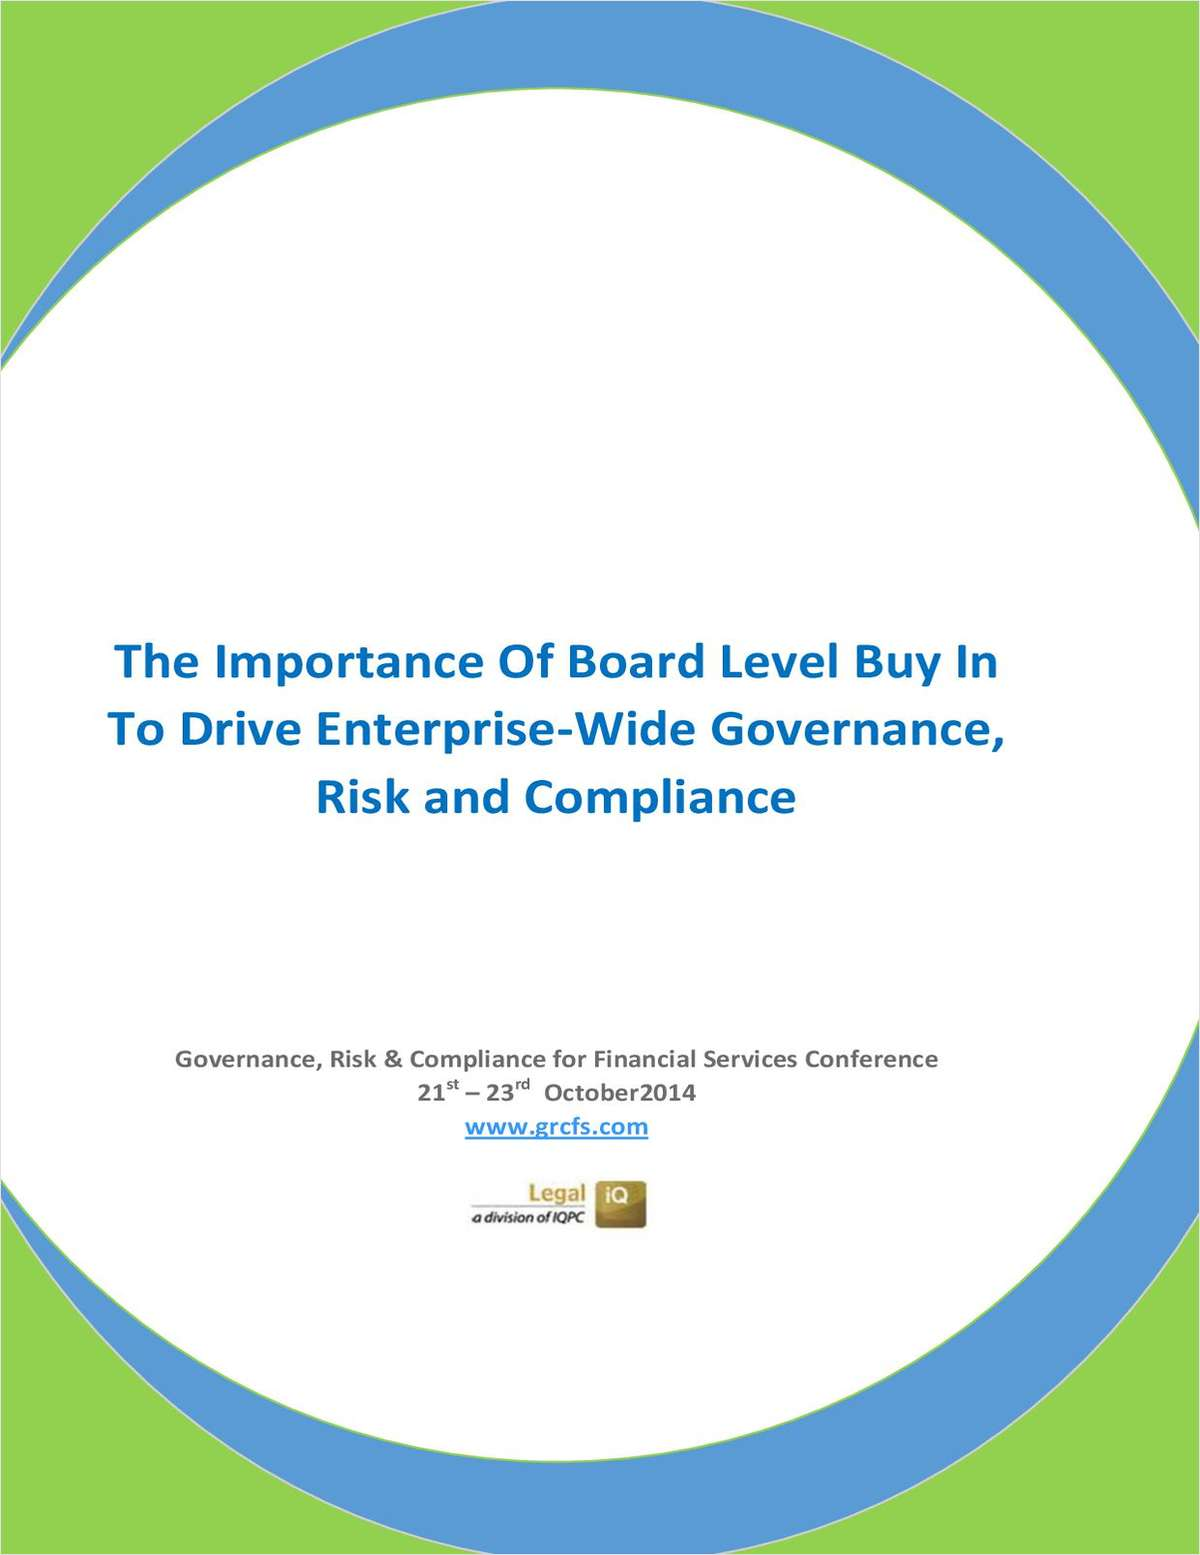 The Importance Of Board Level Buy In To Drive Enterprise-Wide Governance, Risk and Compliance